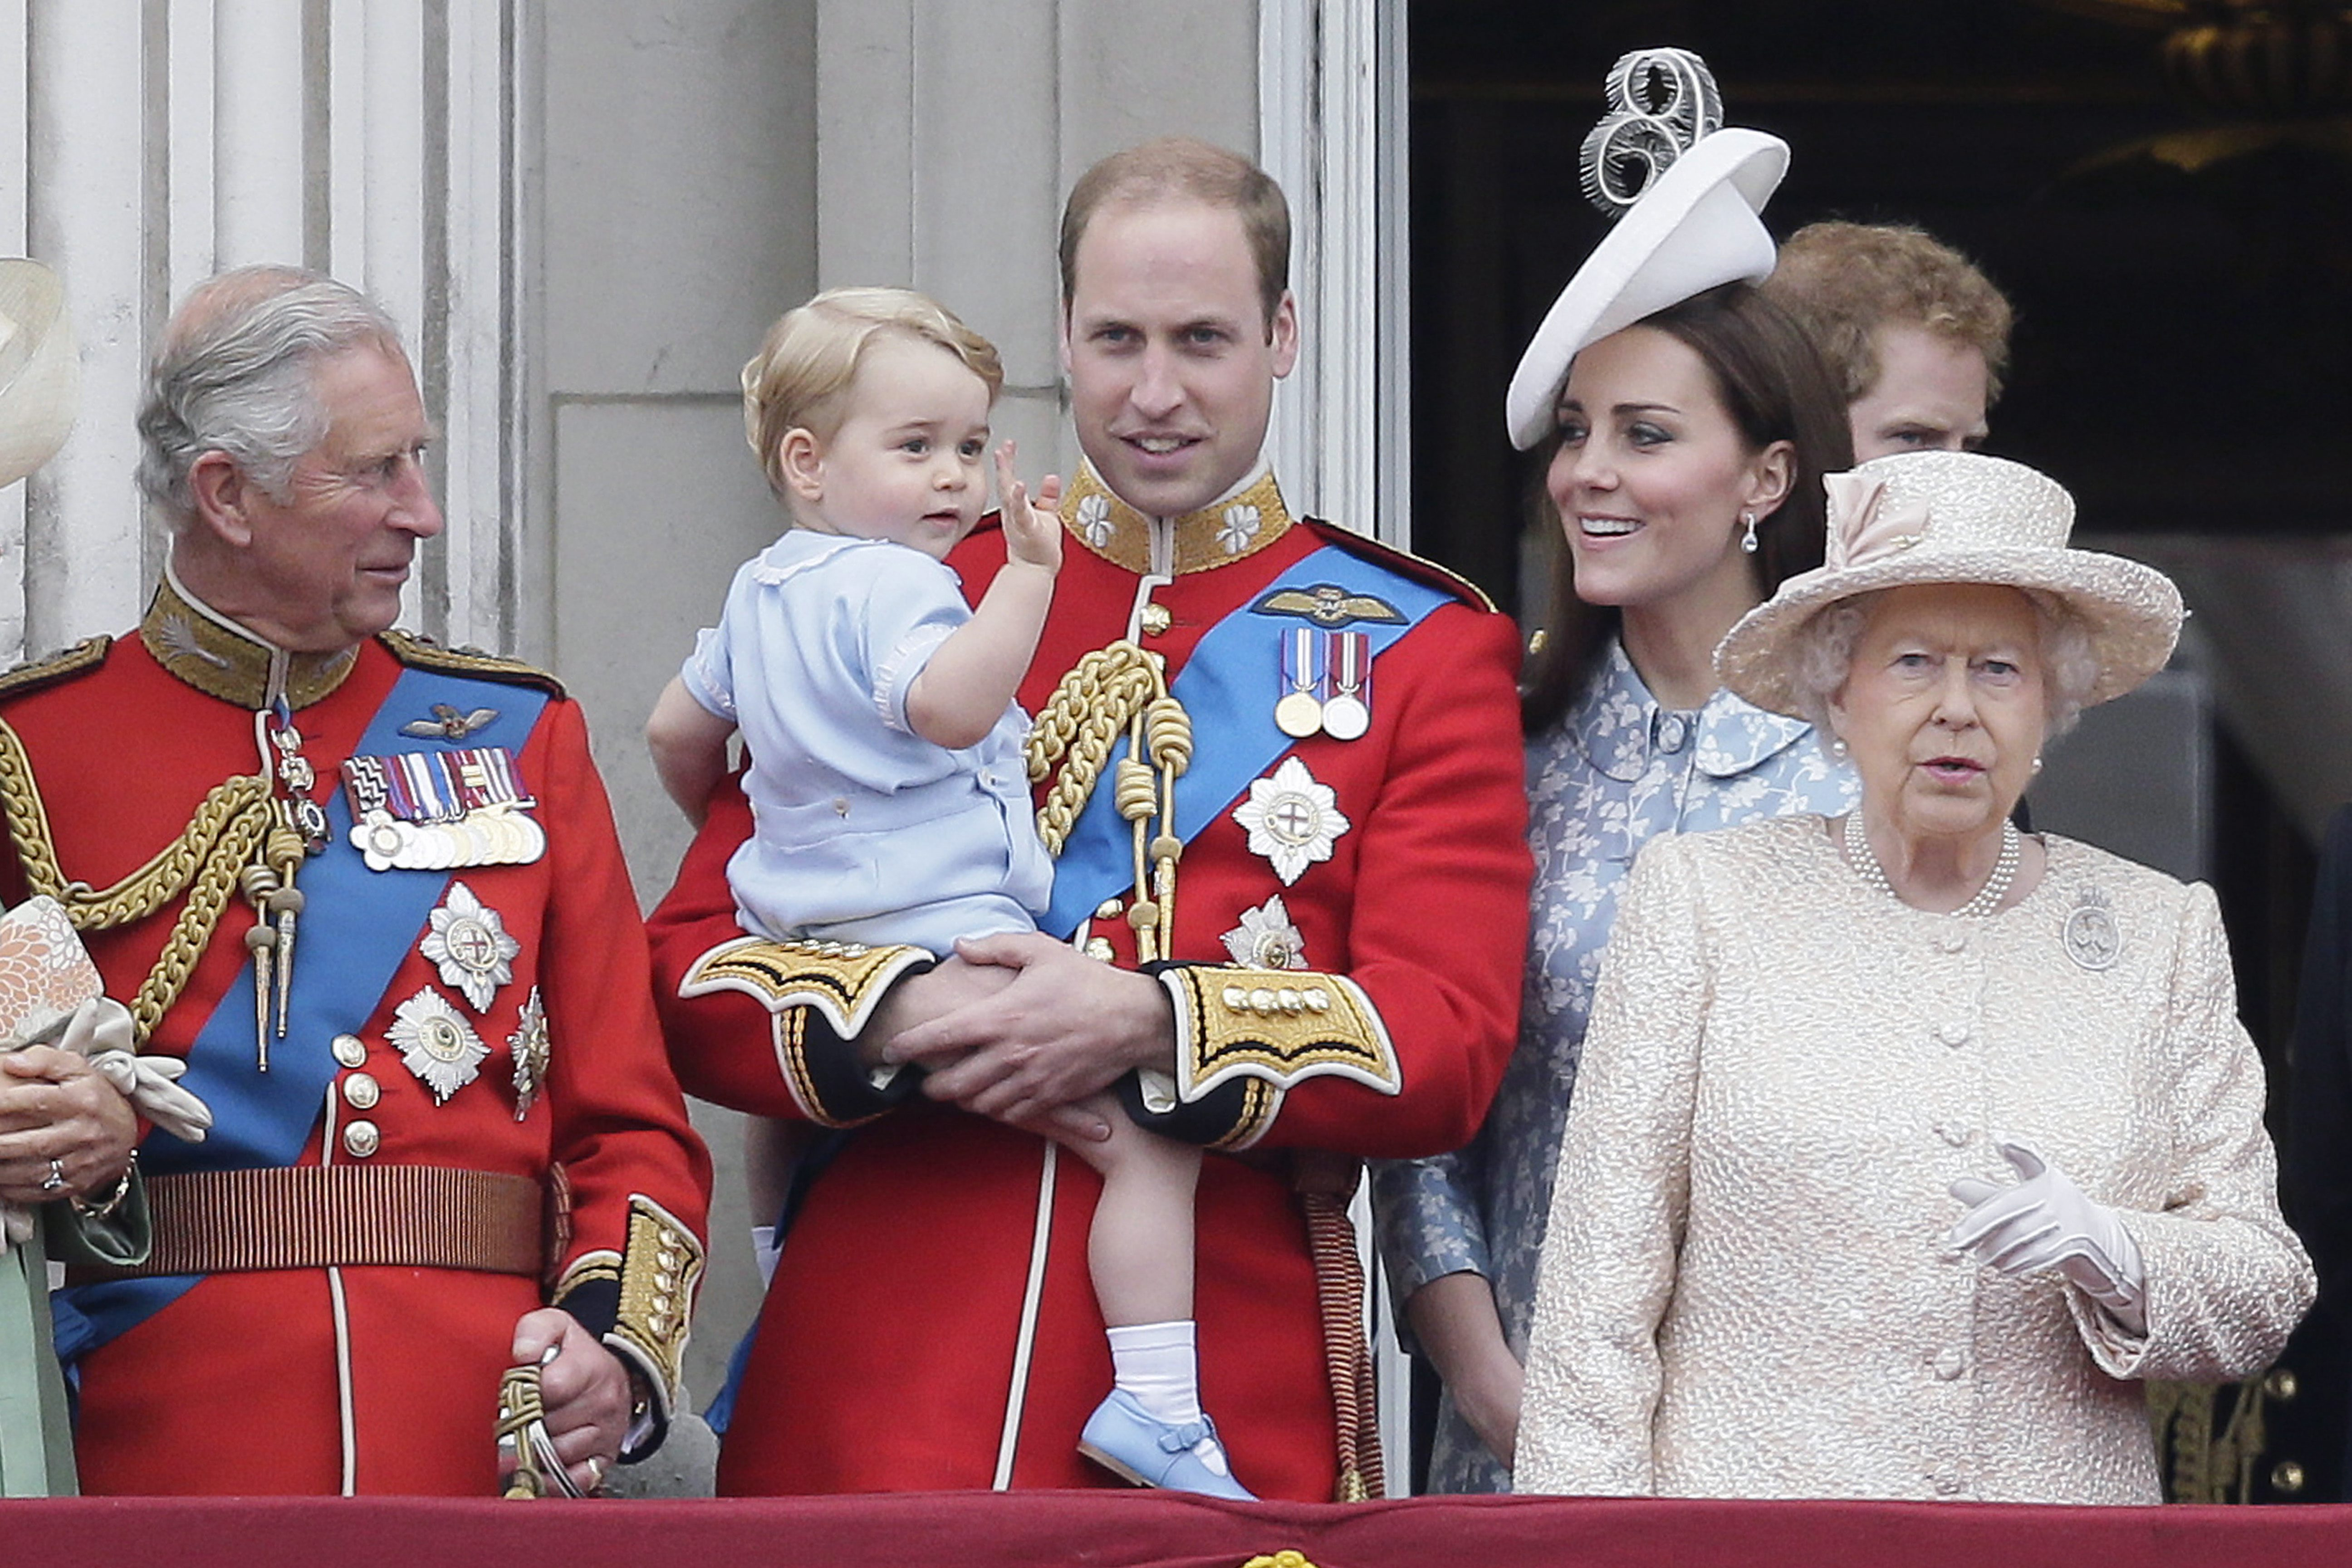 Britain's Prince William holds his son Prince George, with Queen Elizabeth II, right, Kate, Duchess of Cambridge and the Prince of Wales during the Trooping The Colour parade at Buckingham Palace, in London, Saturday, June 13, 2015. Hundreds of soldiers in ceremonial dress have marched in London in the annual Trooping the Color parade to mark the official birthday of Queen Elizabeth II. The Trooping the Color tradition originates from preparations for battle, when flags were carried or